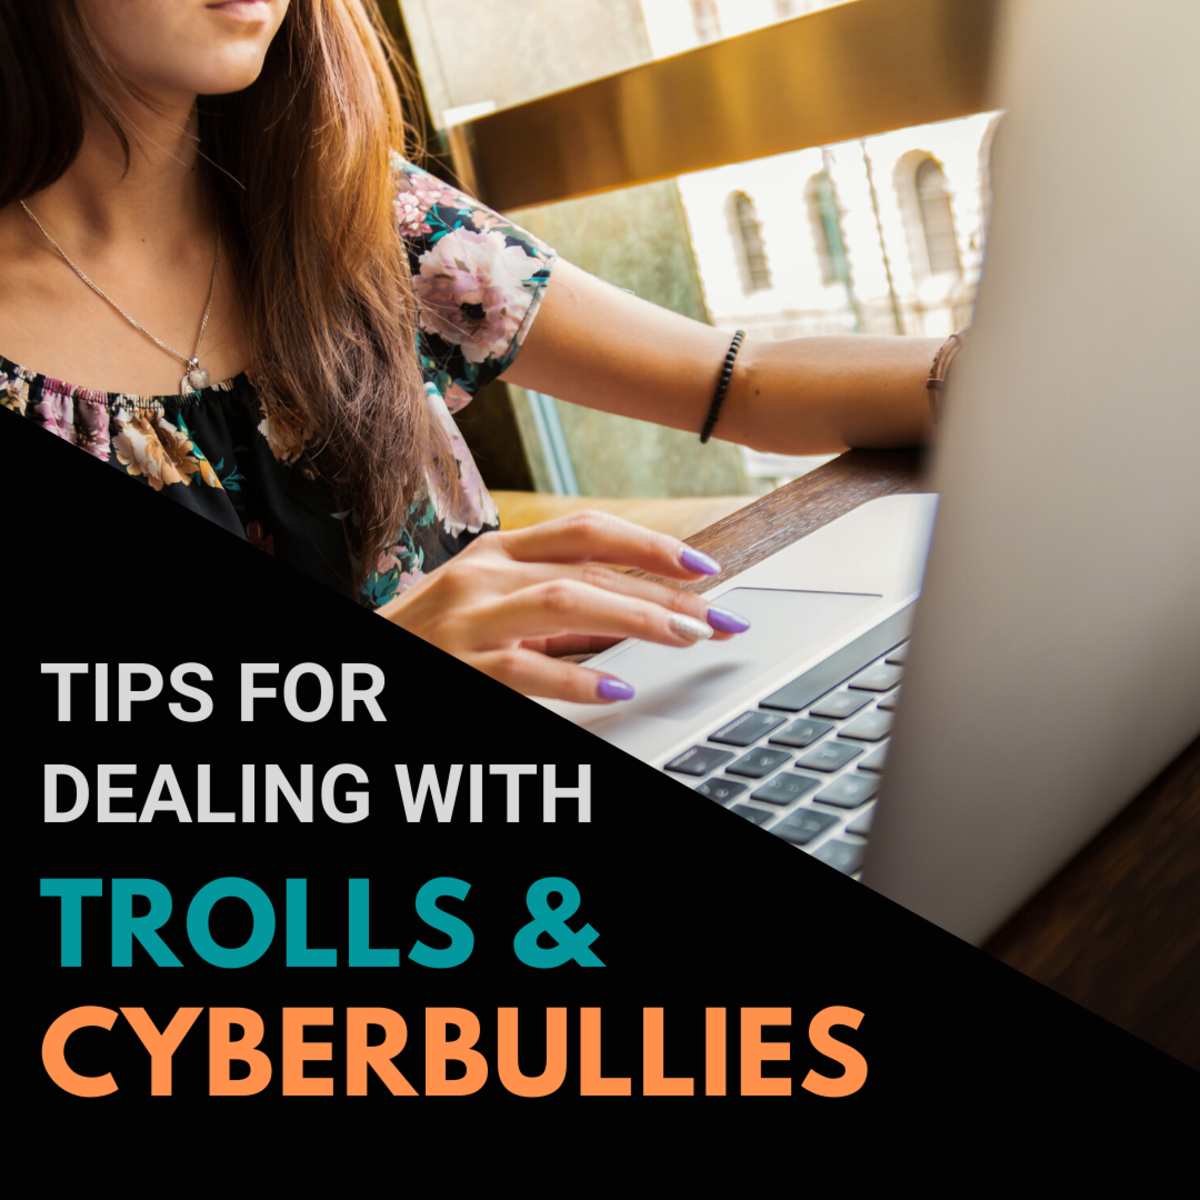 Tips for Dealing With Trolls or Cyberbullies